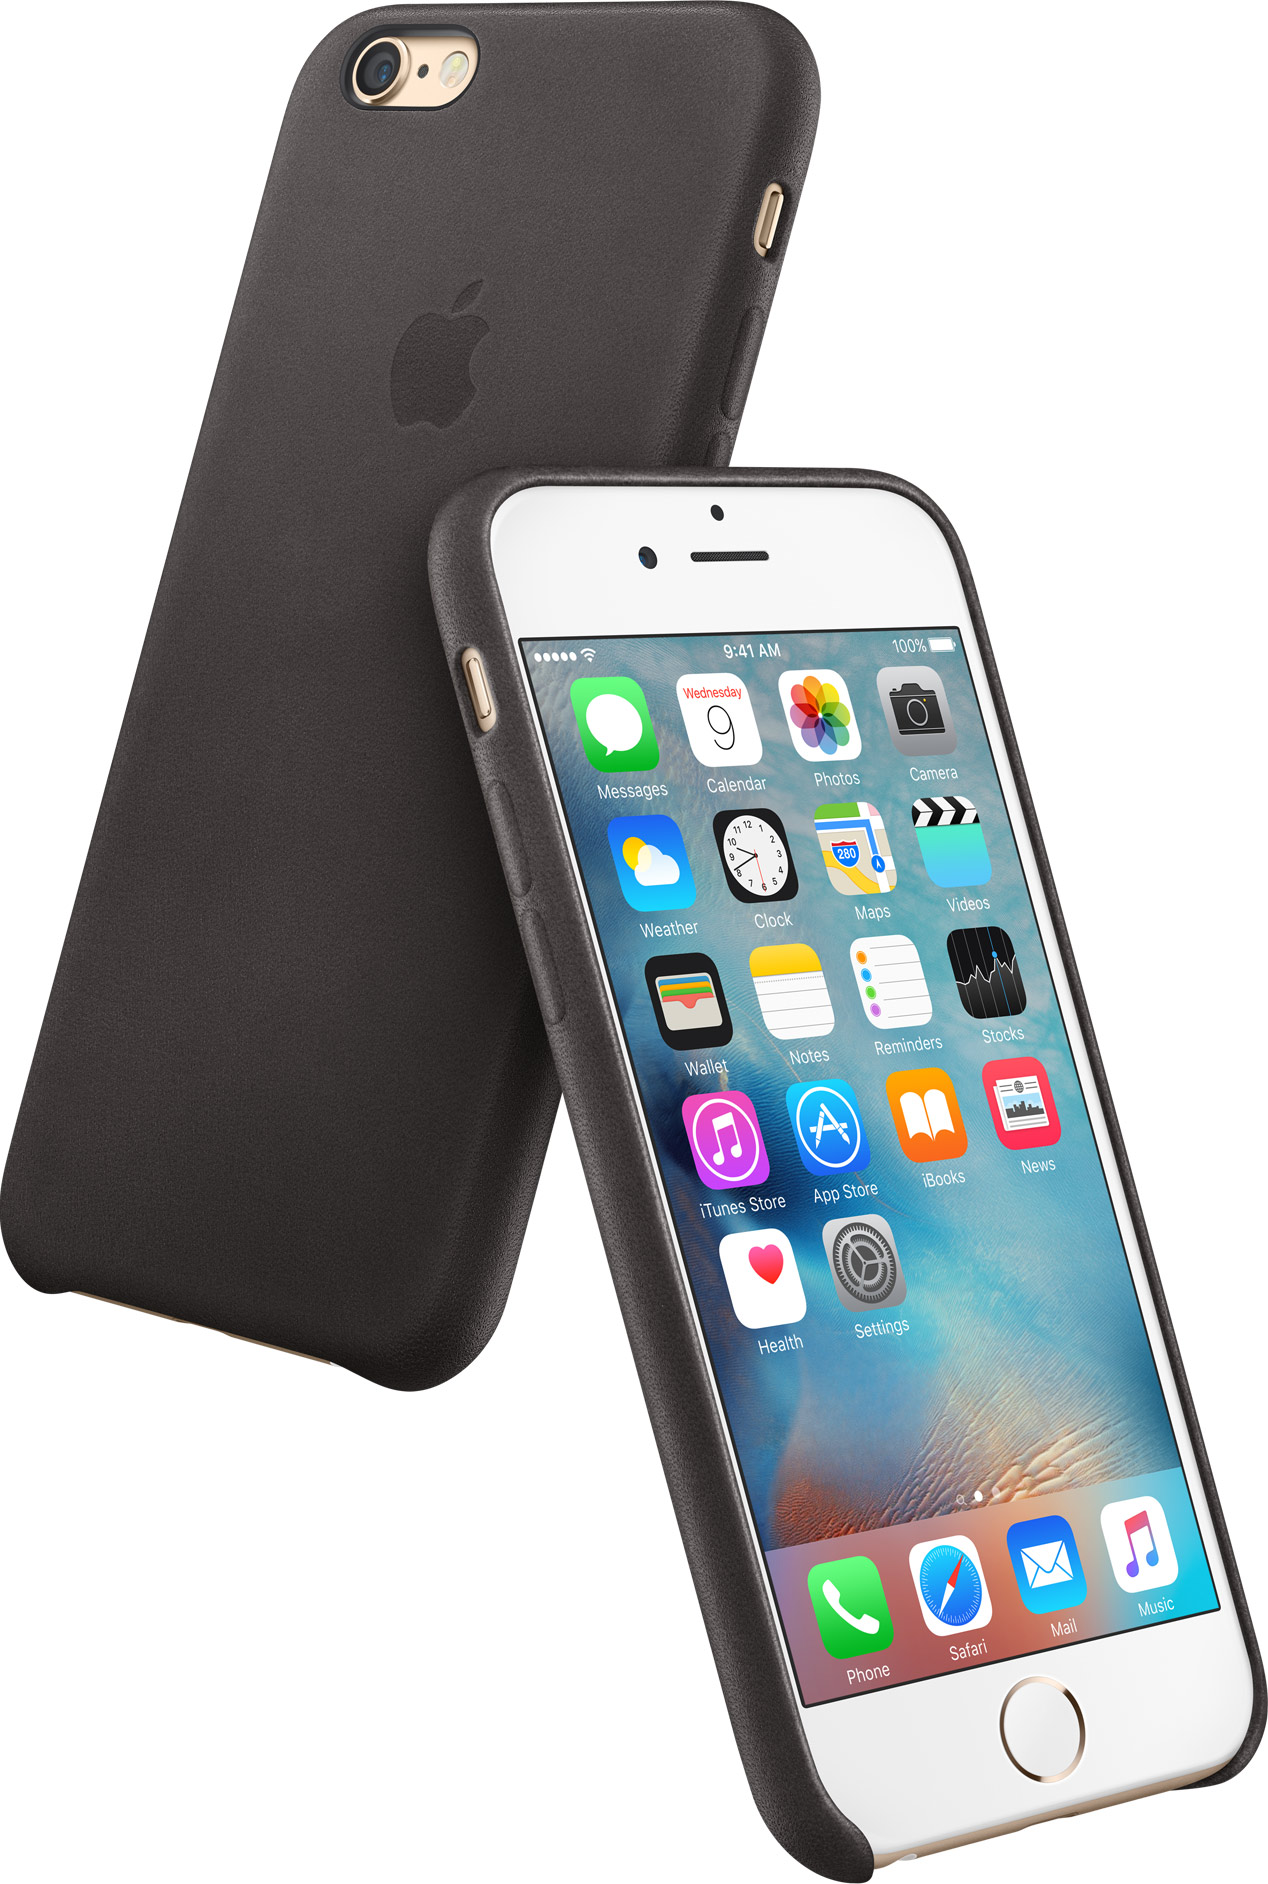 online retailer 6fea5 1349d Apple's iPhone 6/6 Plus cases will fit the new iPhone 6s/6s Plus models